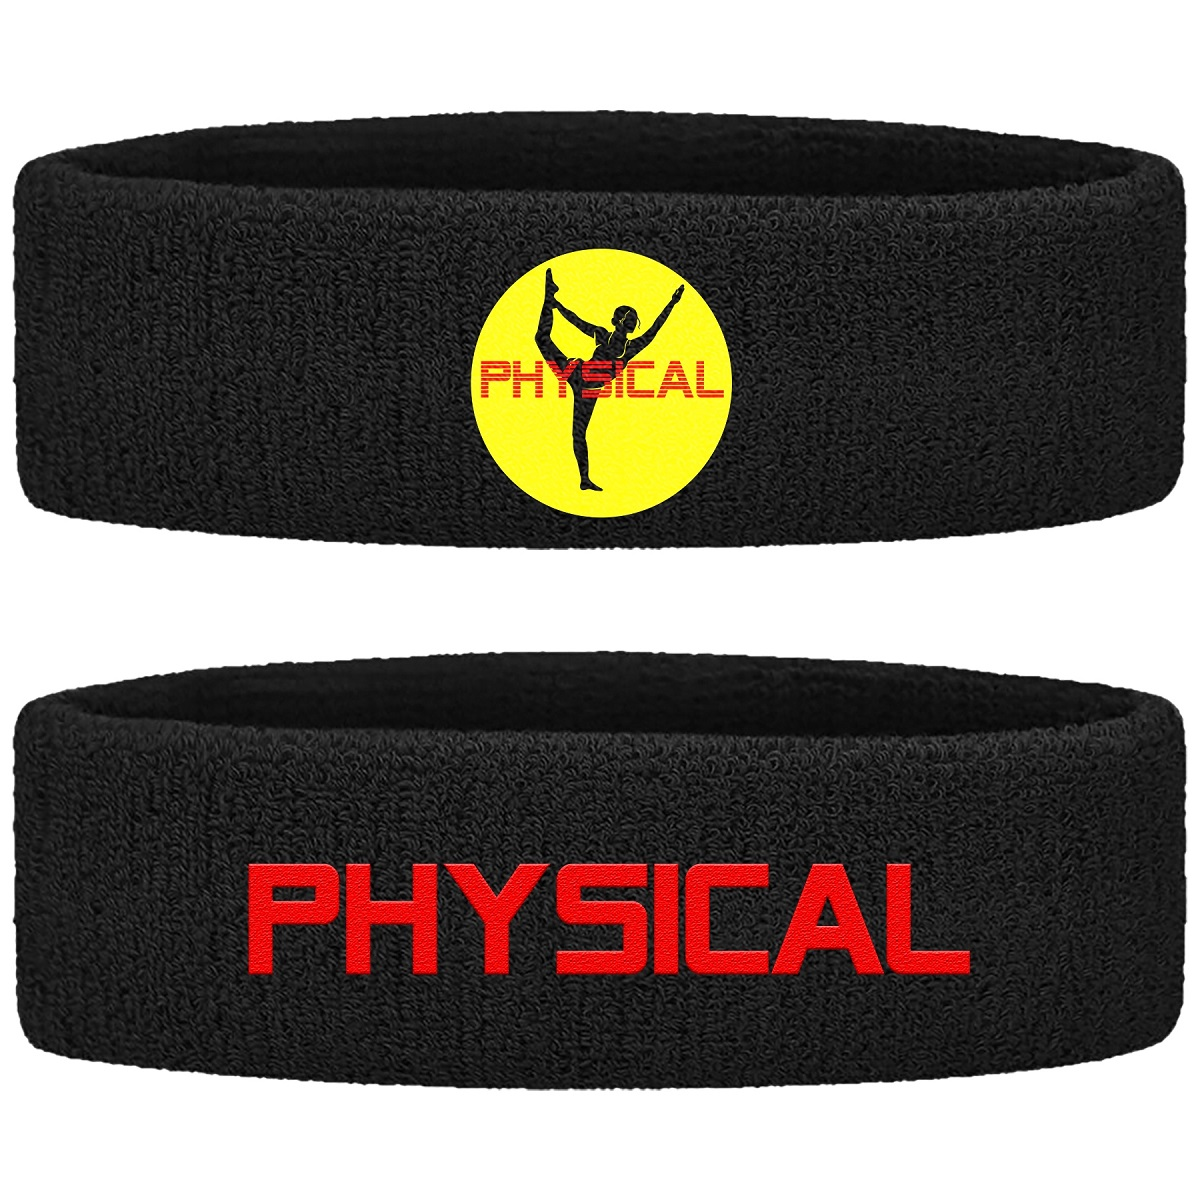 LET'S GET PHYSICAL HEADBAND